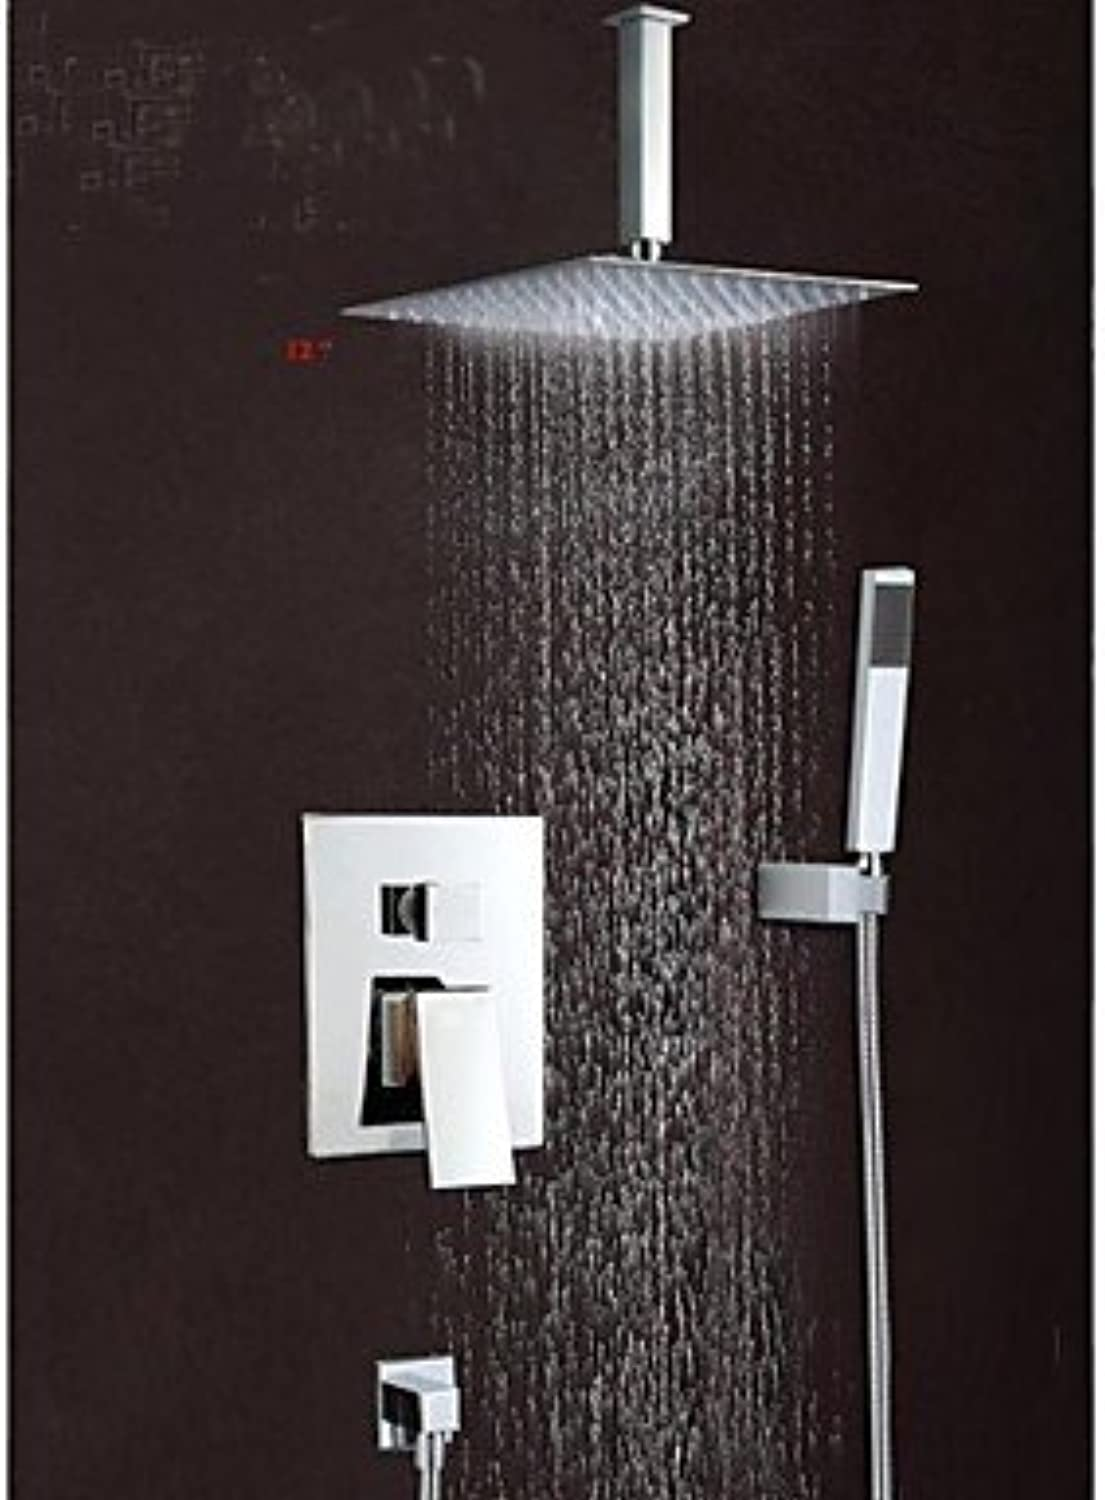 DF Wall Mounted Rain Shower Faucet Set 12 Square Shower Head Bathroom Mixer Taps